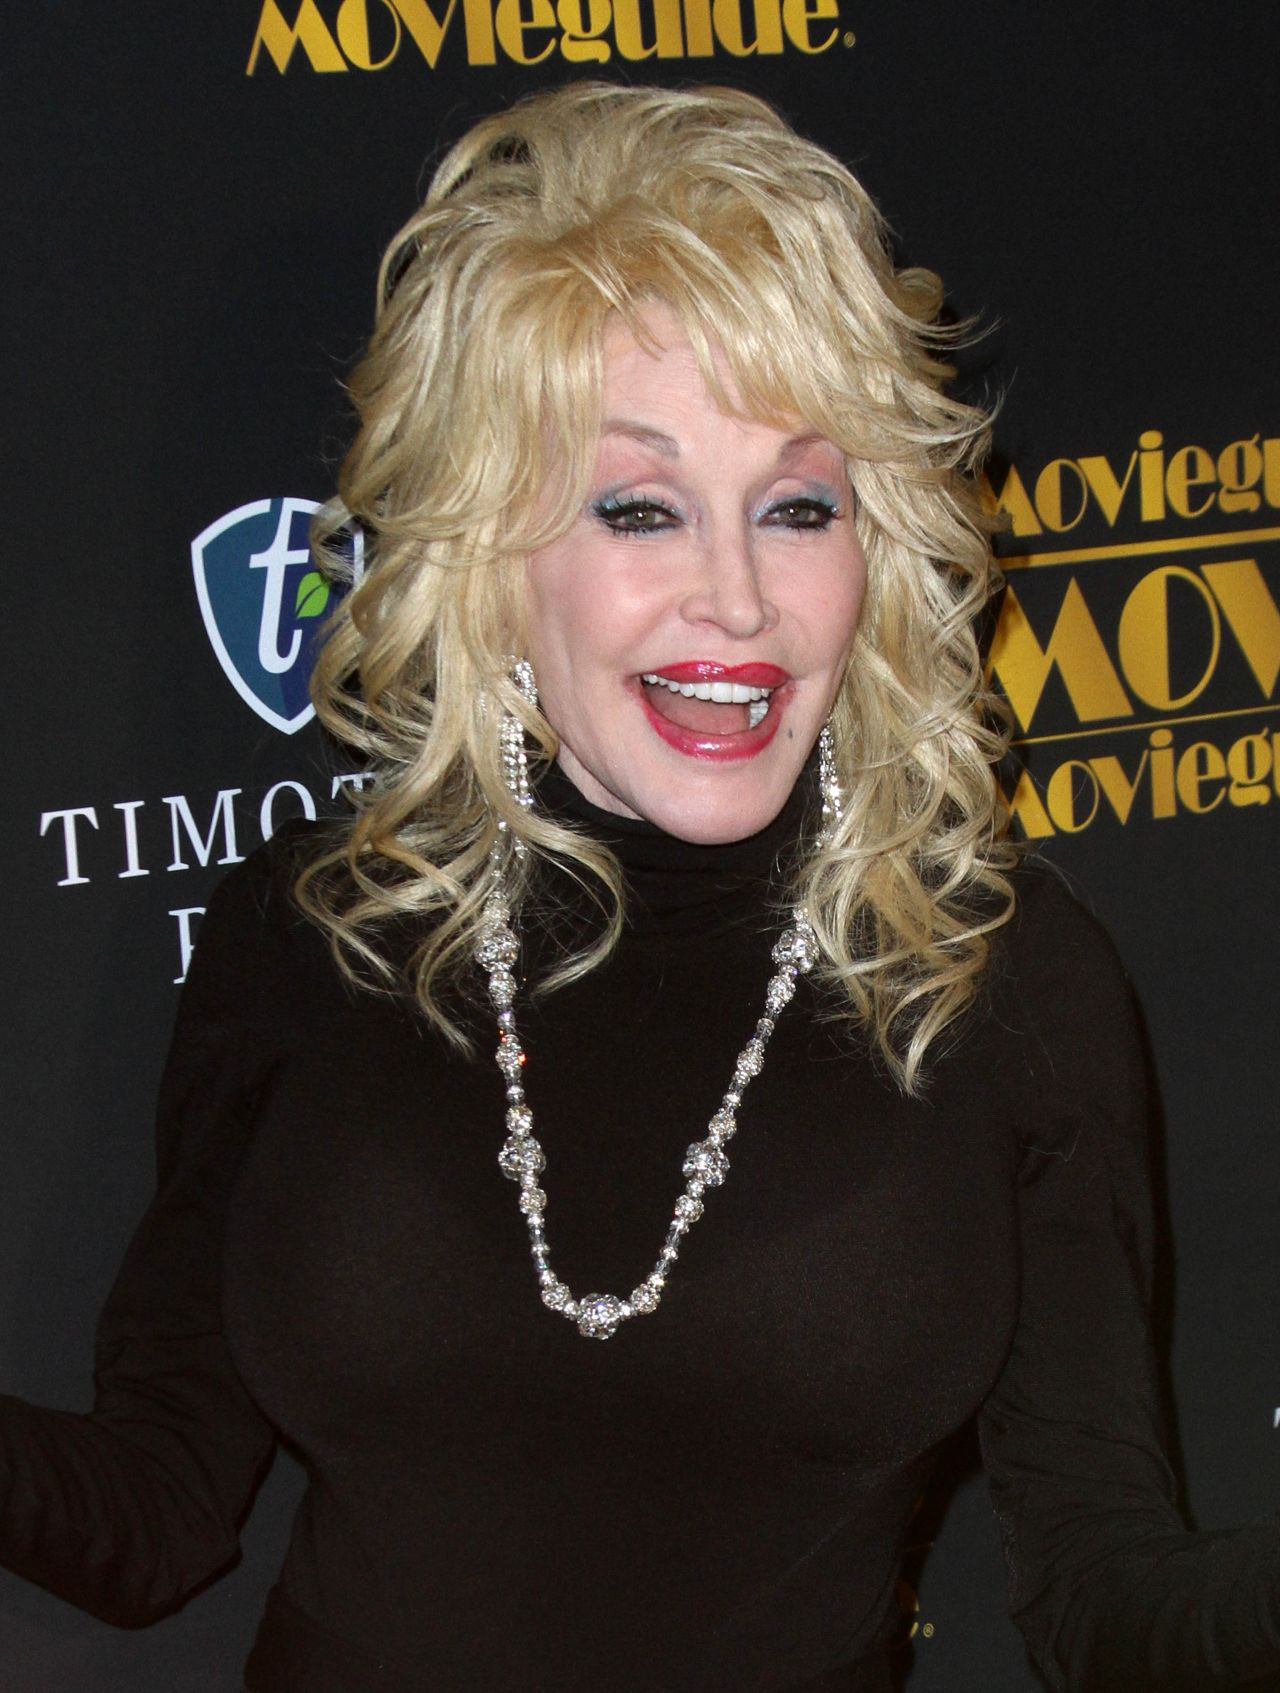 Dolly Parton Movieguide Awards Gala 2016 In Universal City